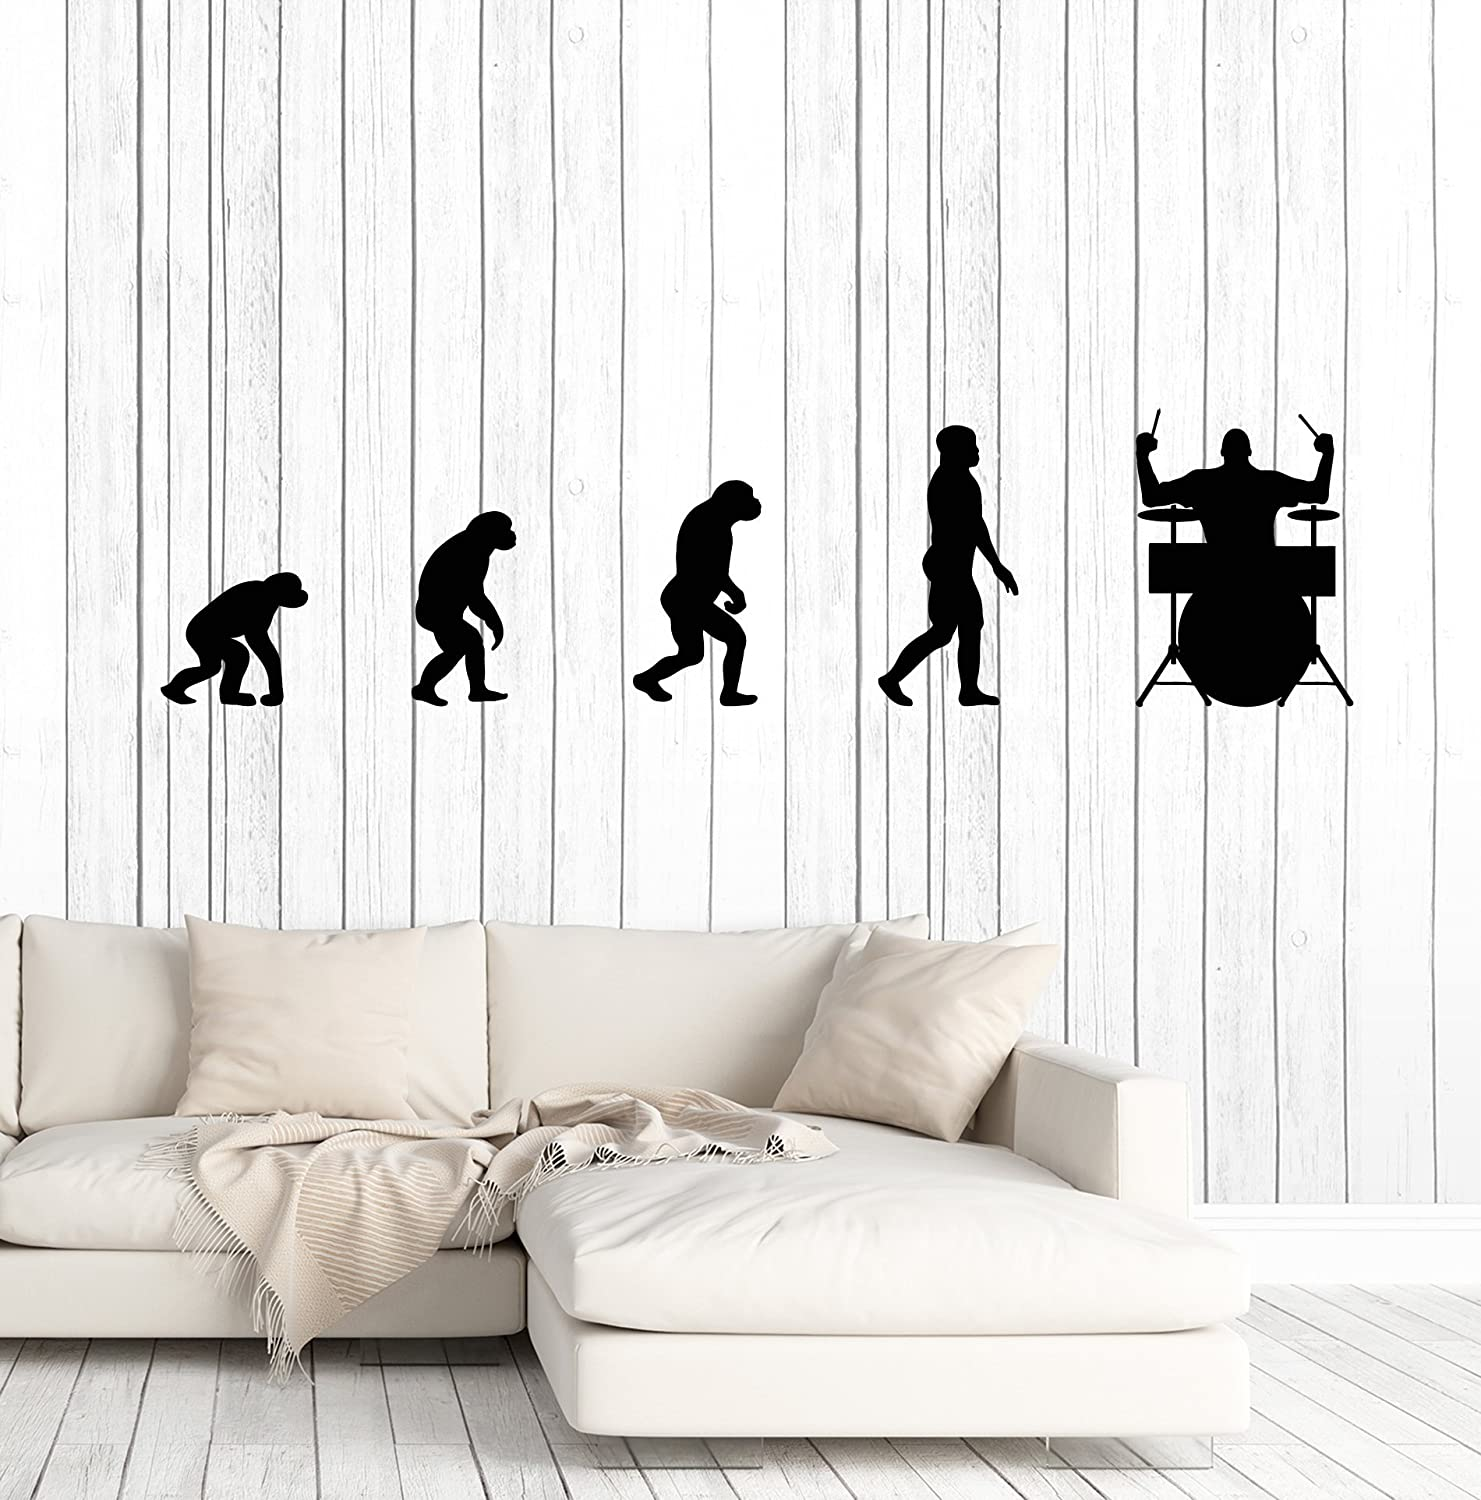 Surprising Amazon Com Vinyl Wall Decal Evolution Of Man Drummer Music Ocoug Best Dining Table And Chair Ideas Images Ocougorg